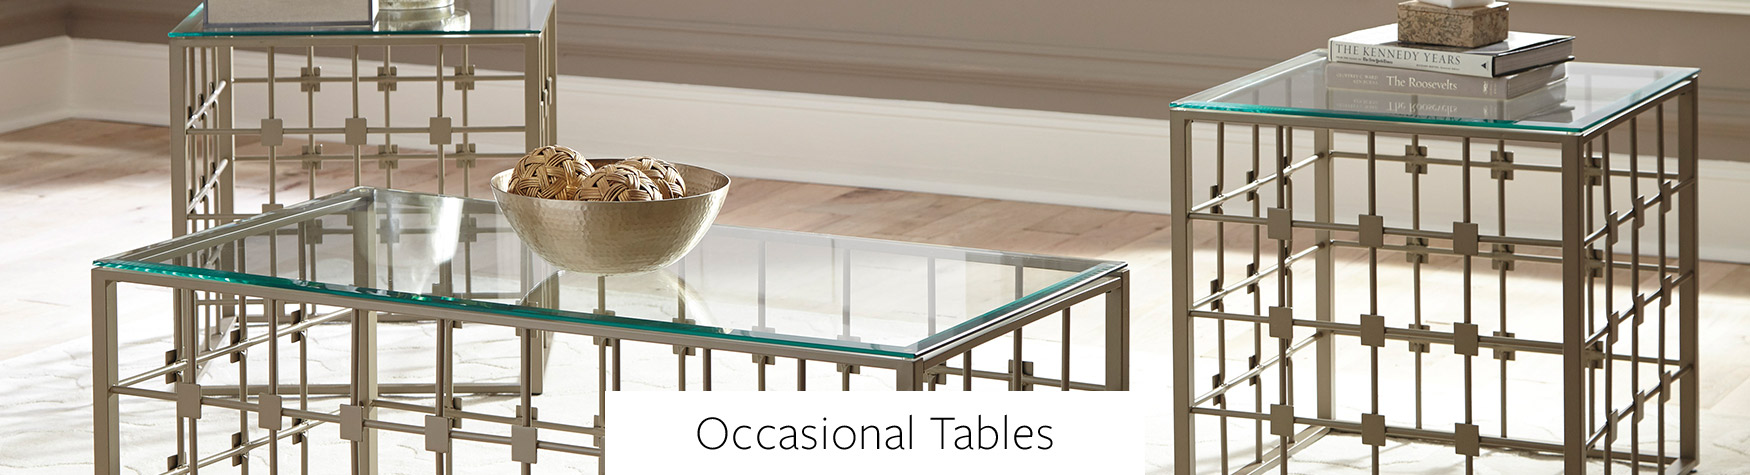 occasionals-tables-banner.jpg